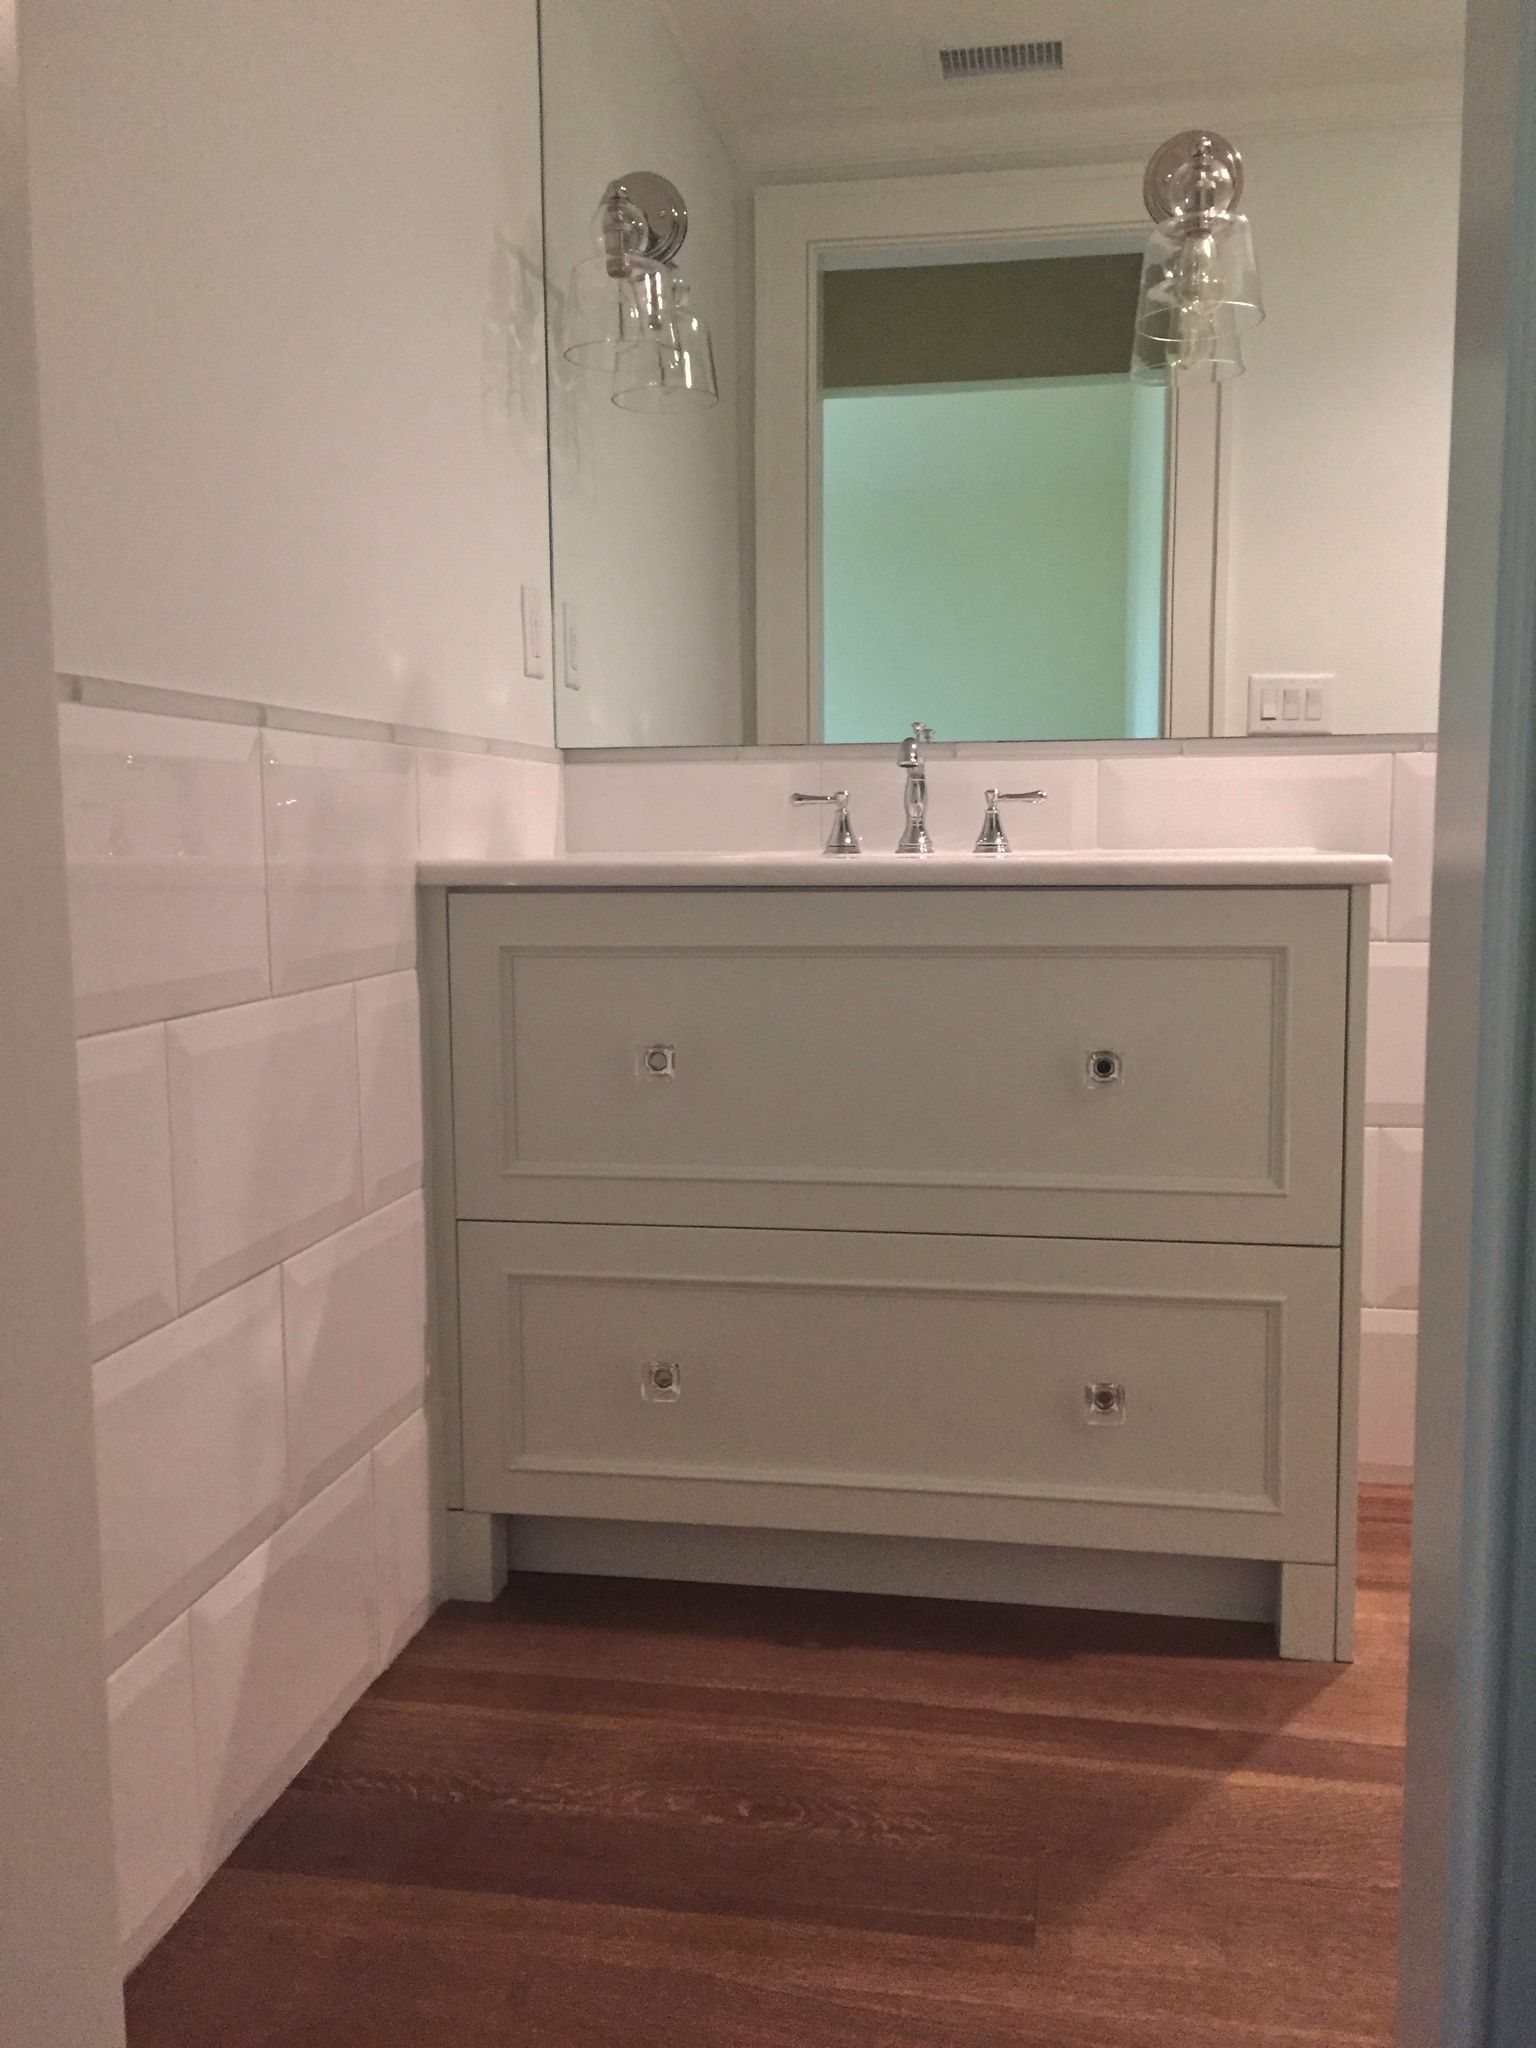 8x10 Beveled White Porcelain Tile As Wainscot With Glass